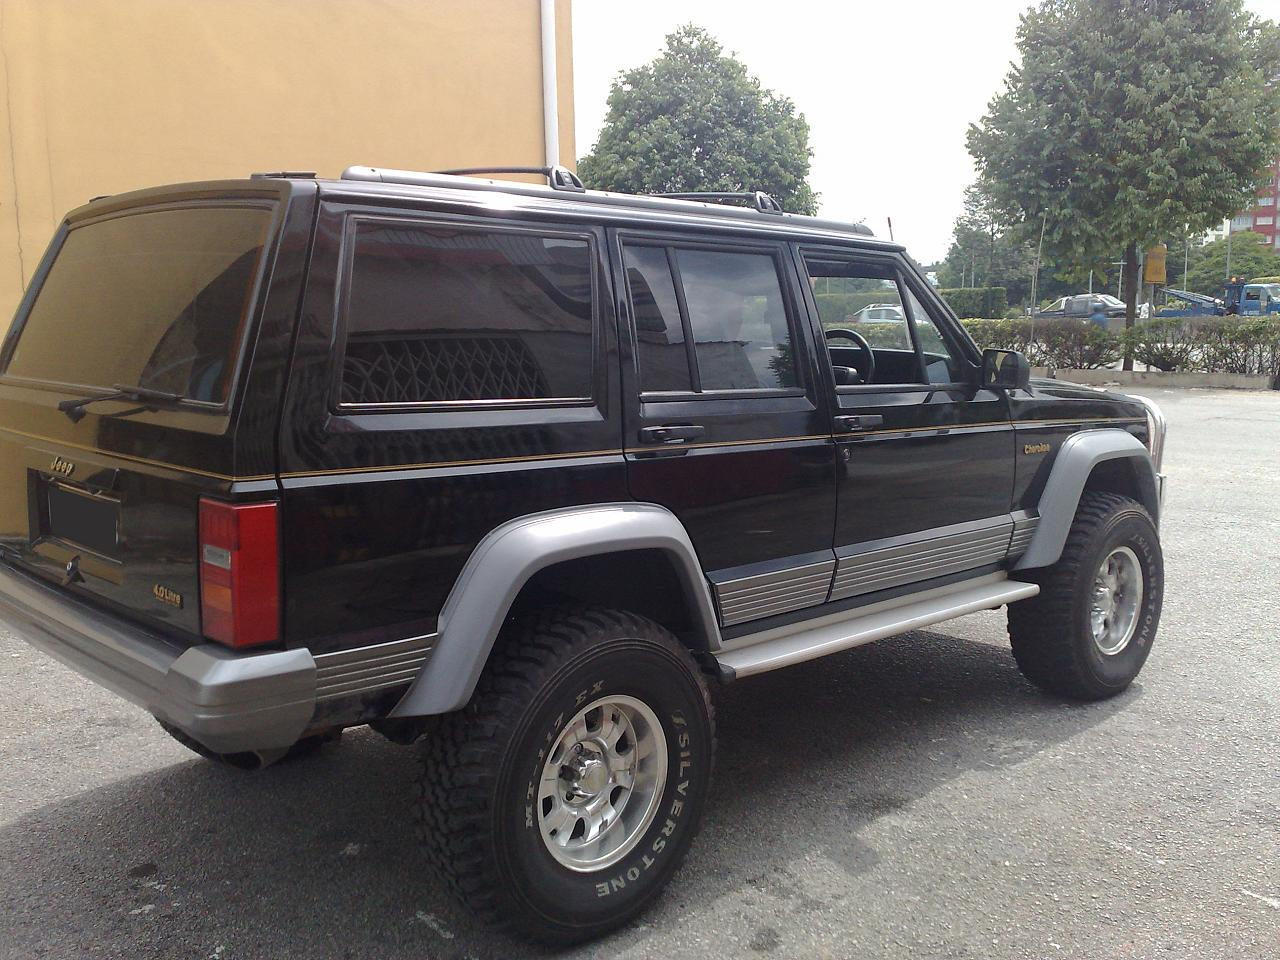 details about jeep cherokee xj frp fender flares brand new quality. Cars Review. Best American Auto & Cars Review